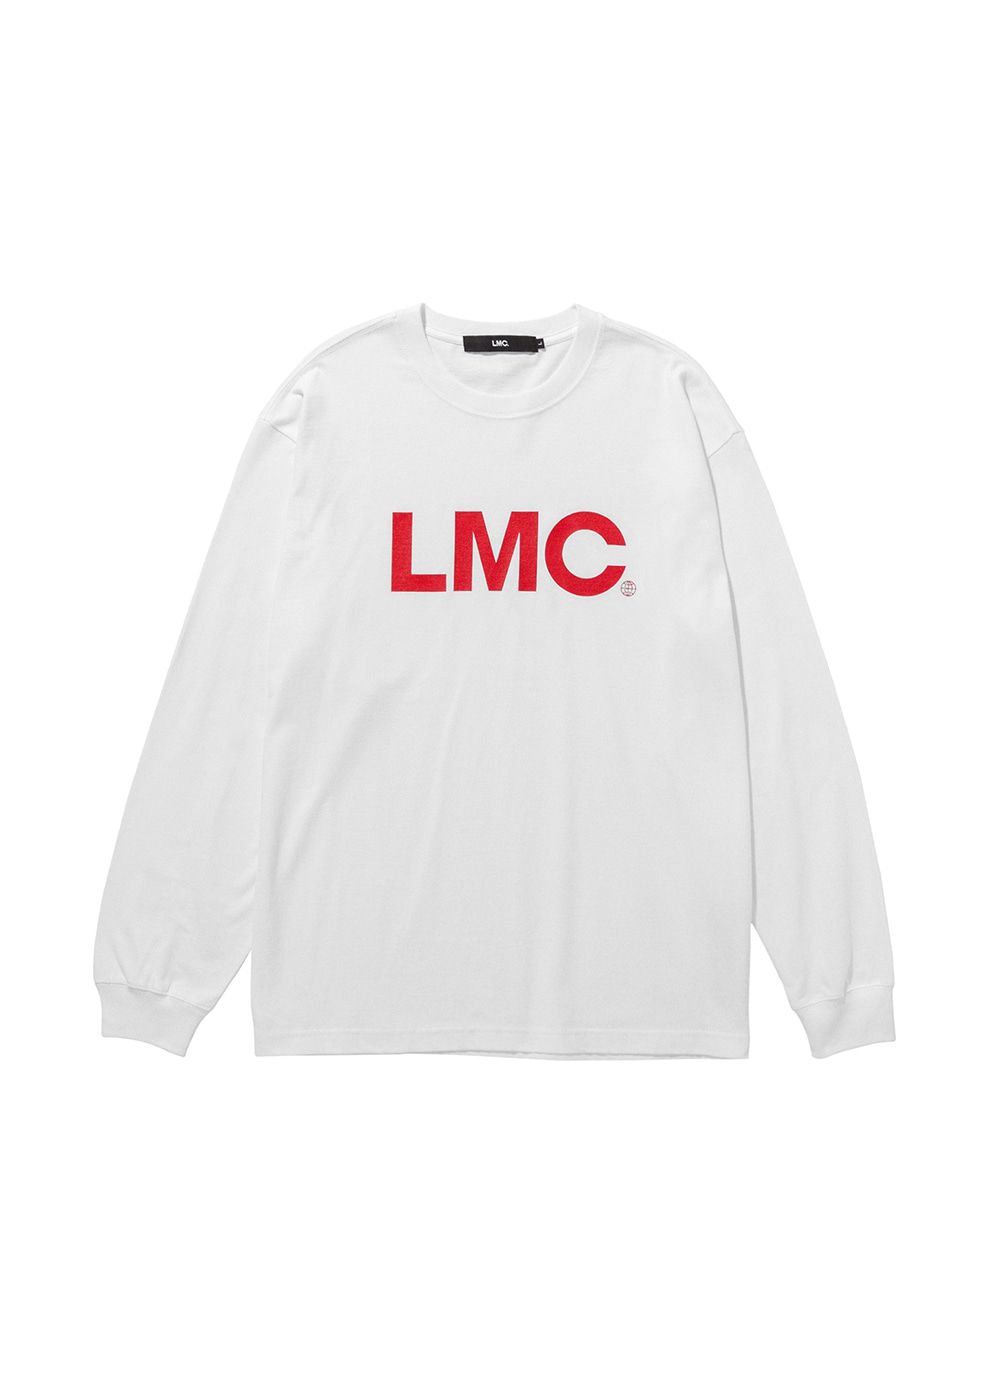 LMC OG LONG SLV TEE white